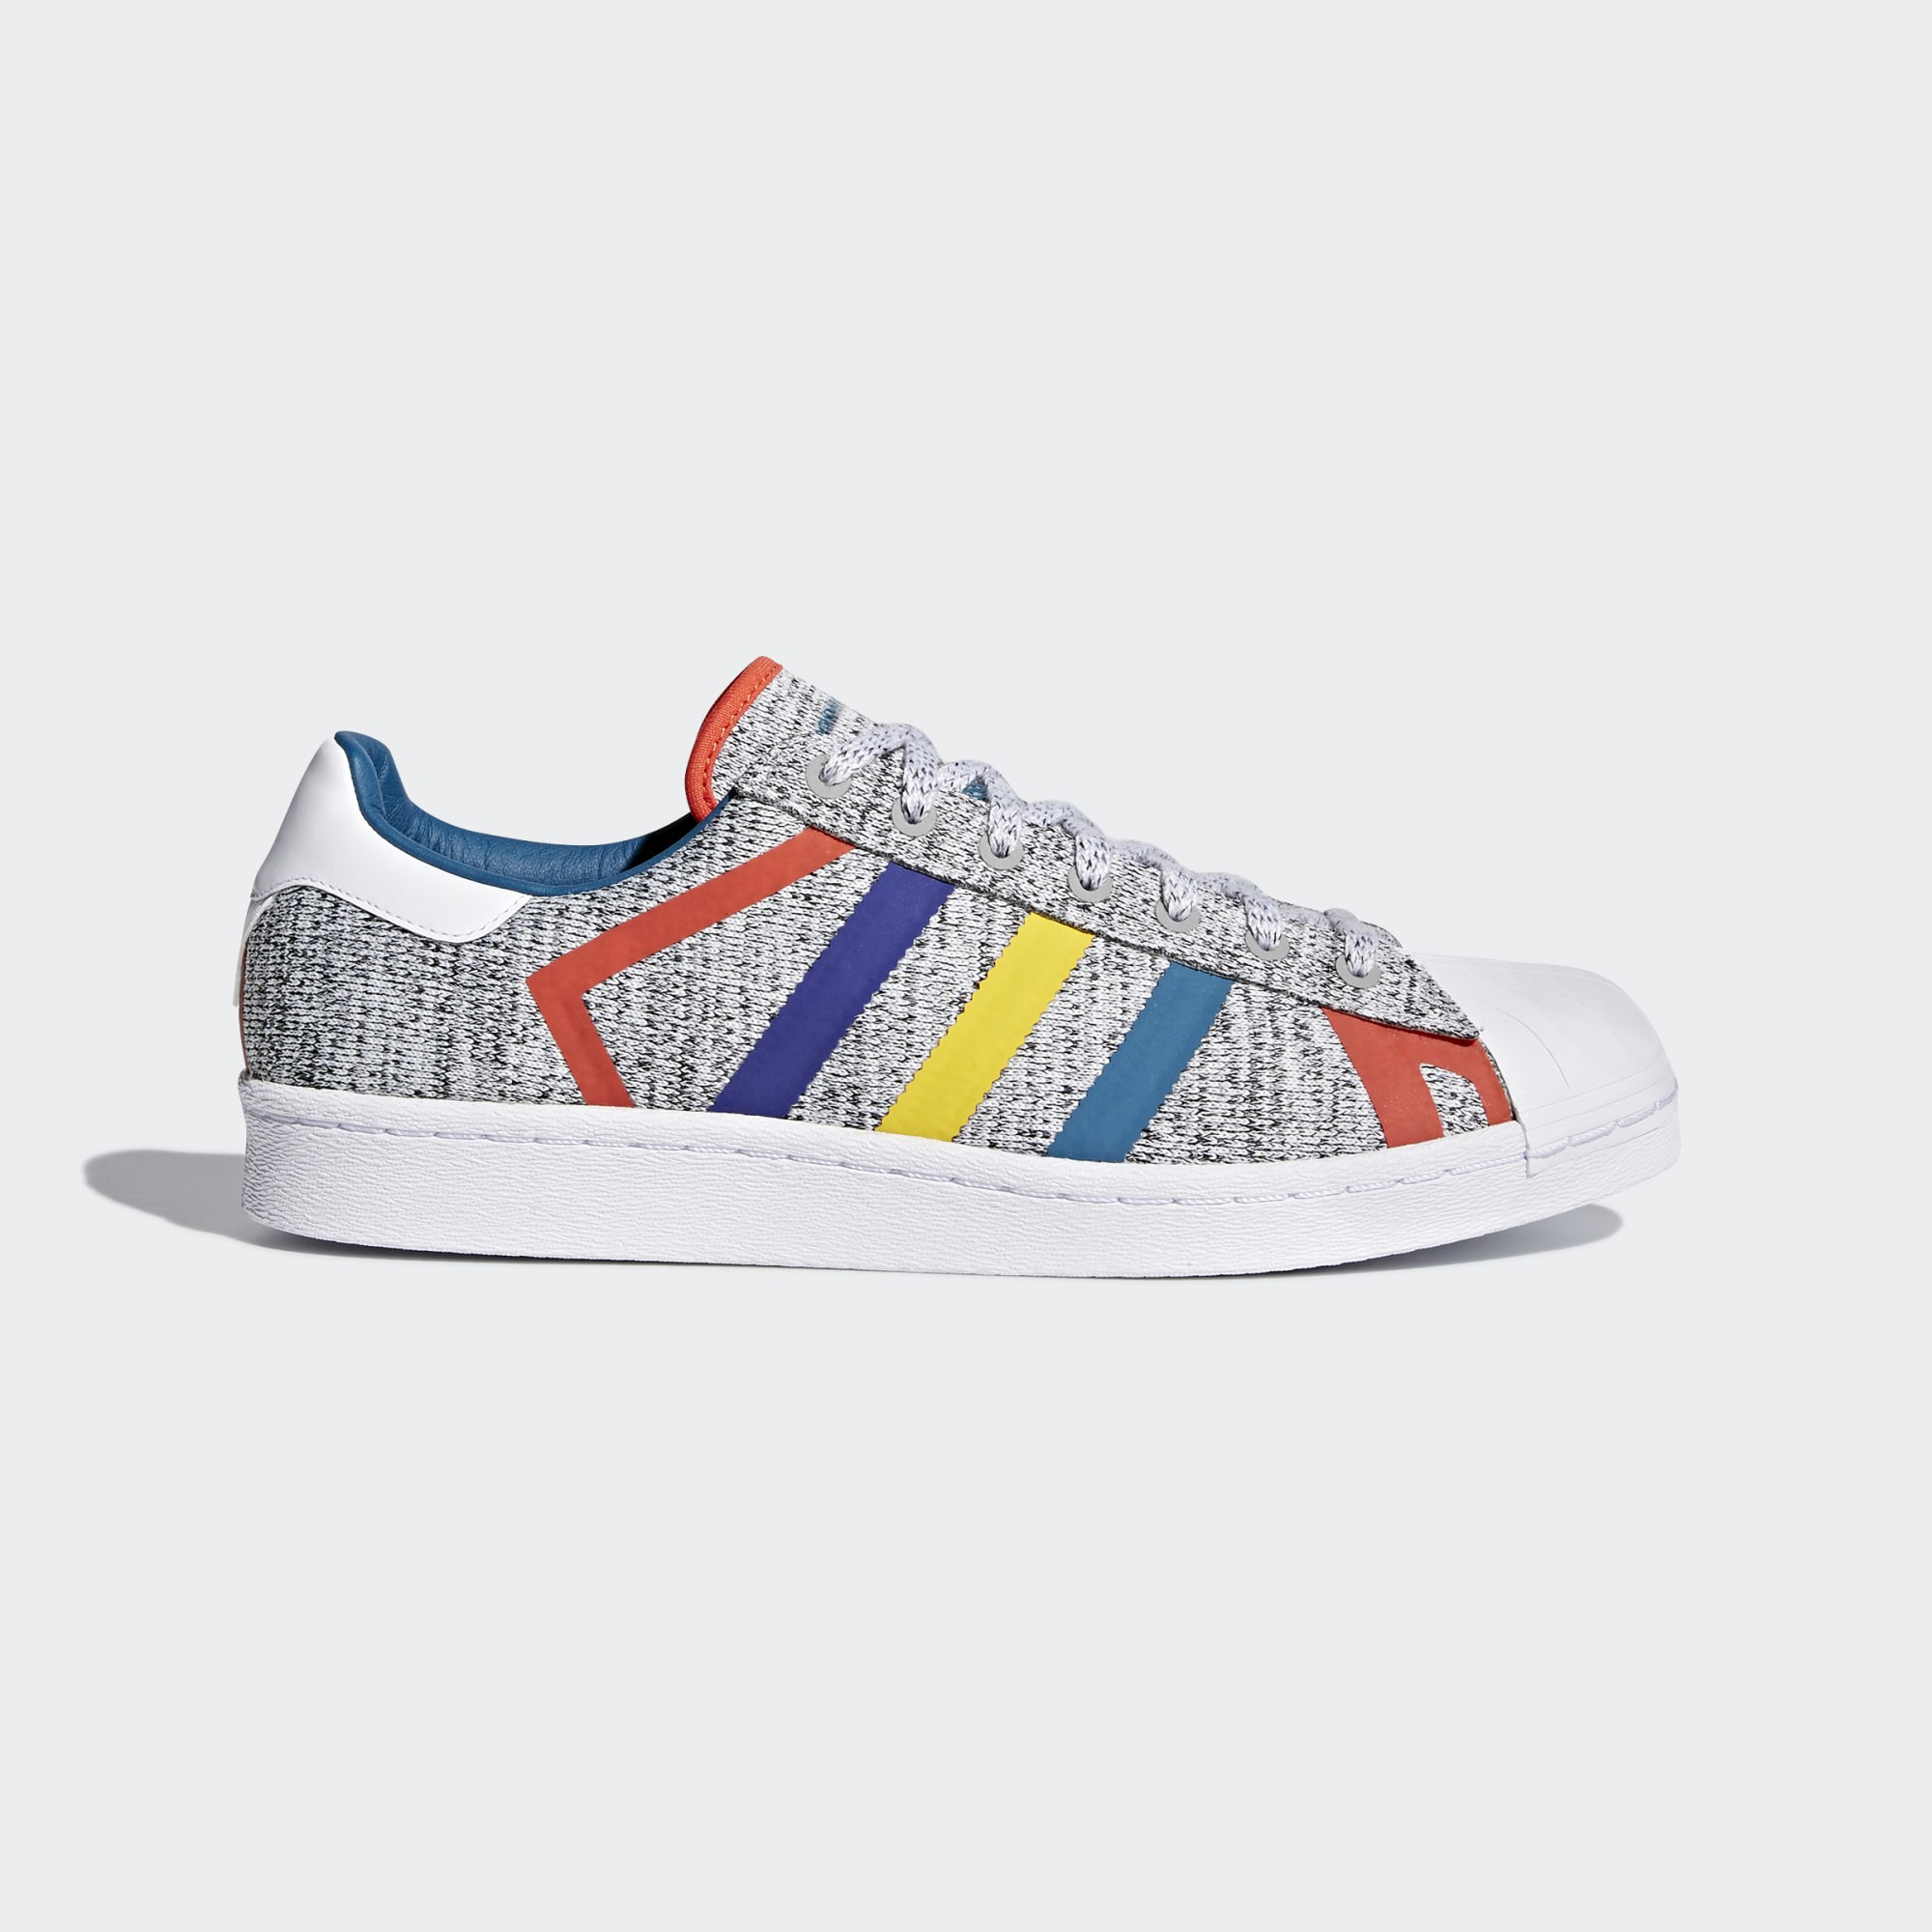 adidas Superstar White Mountaineering Grey Heather AQ0352